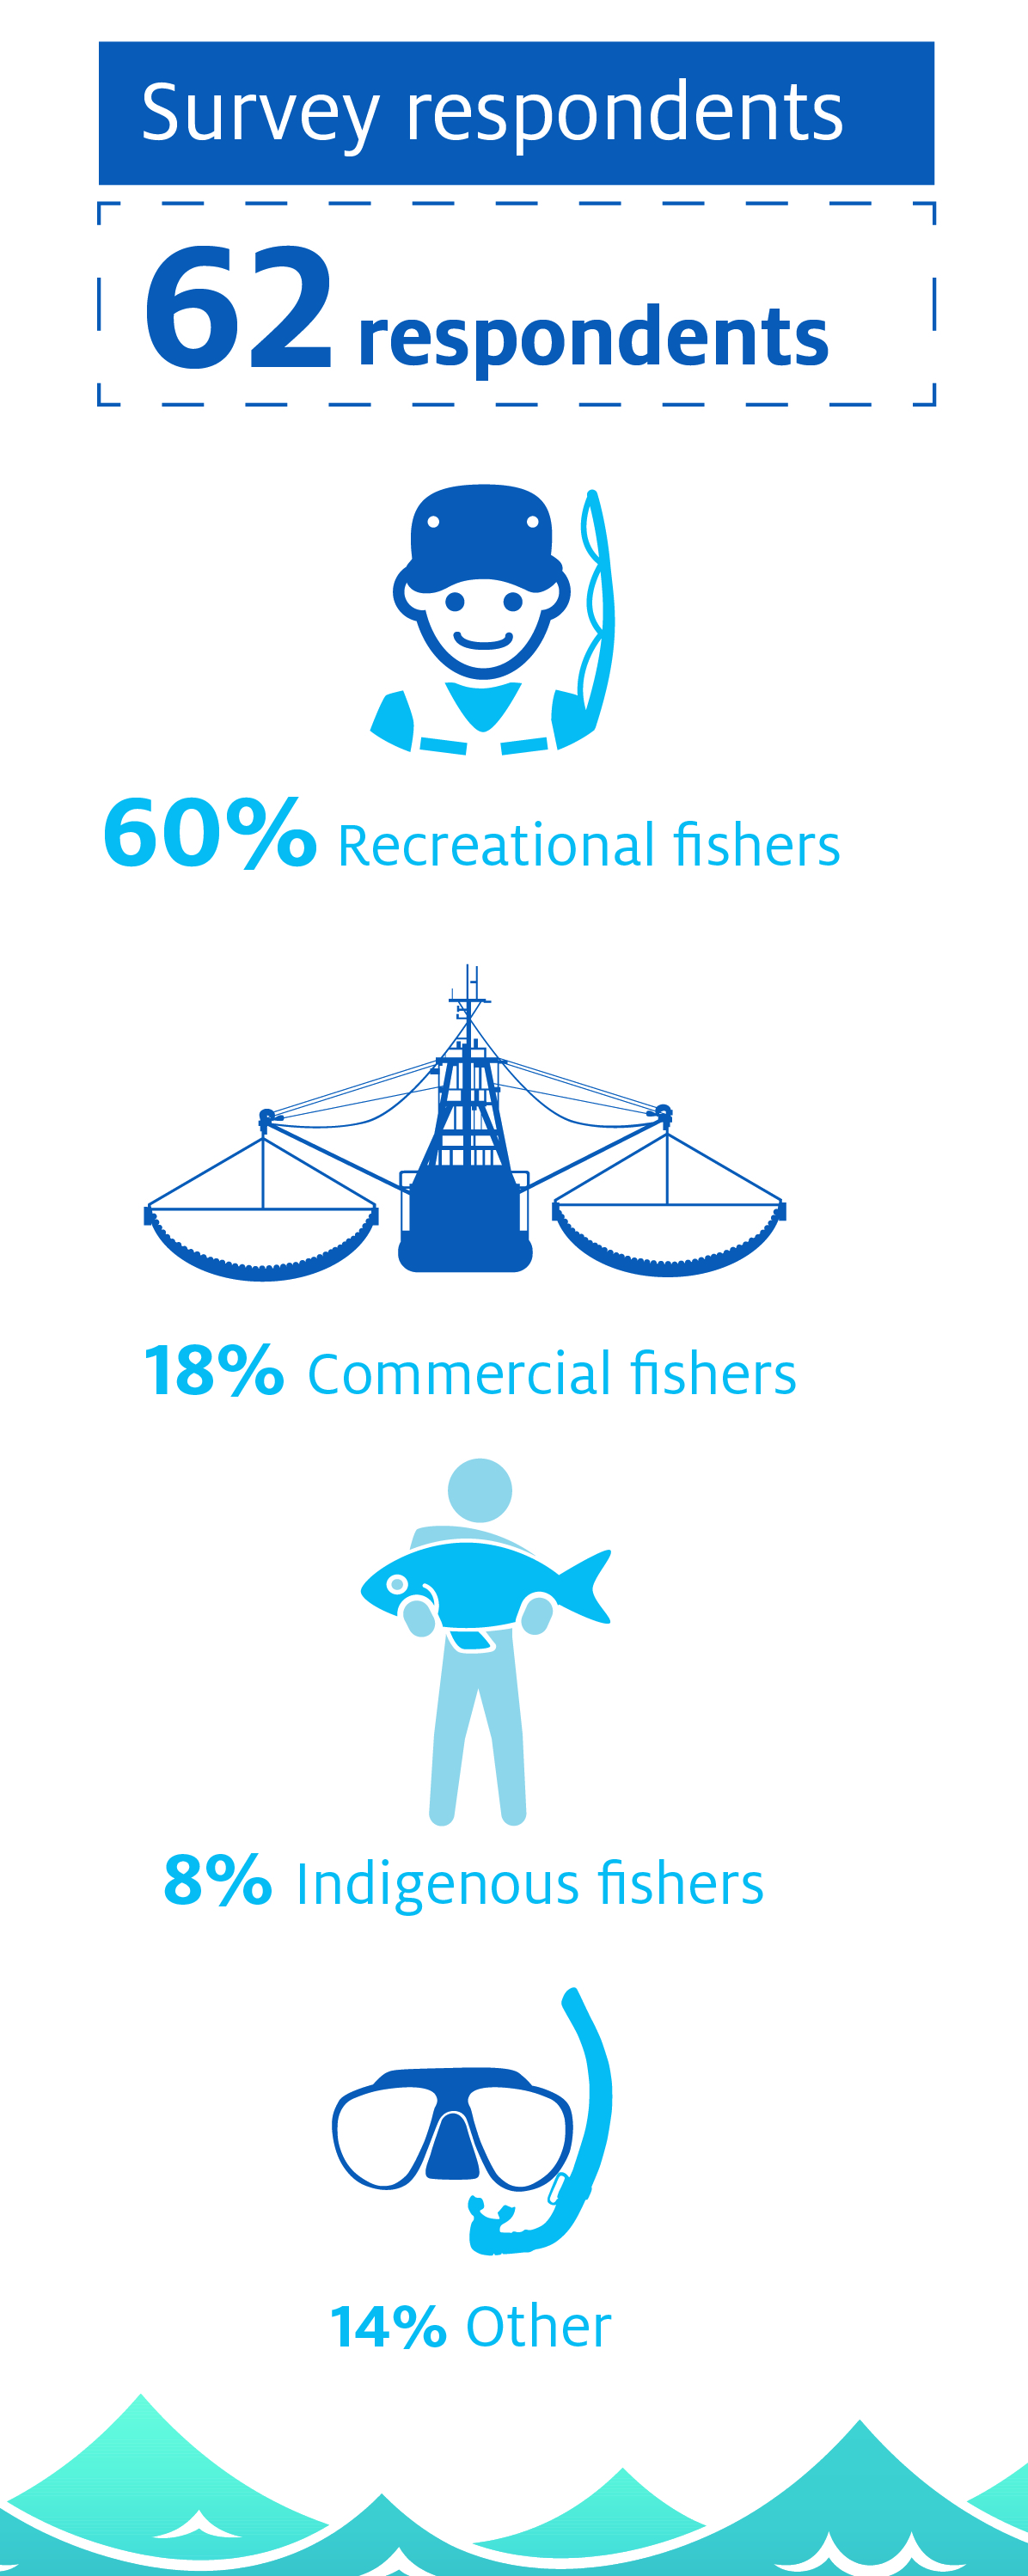 Survey respondents: 62 respondents, 60% recreational fishers, 18% commercial fishers, 8% indigenous fishers, 14% other